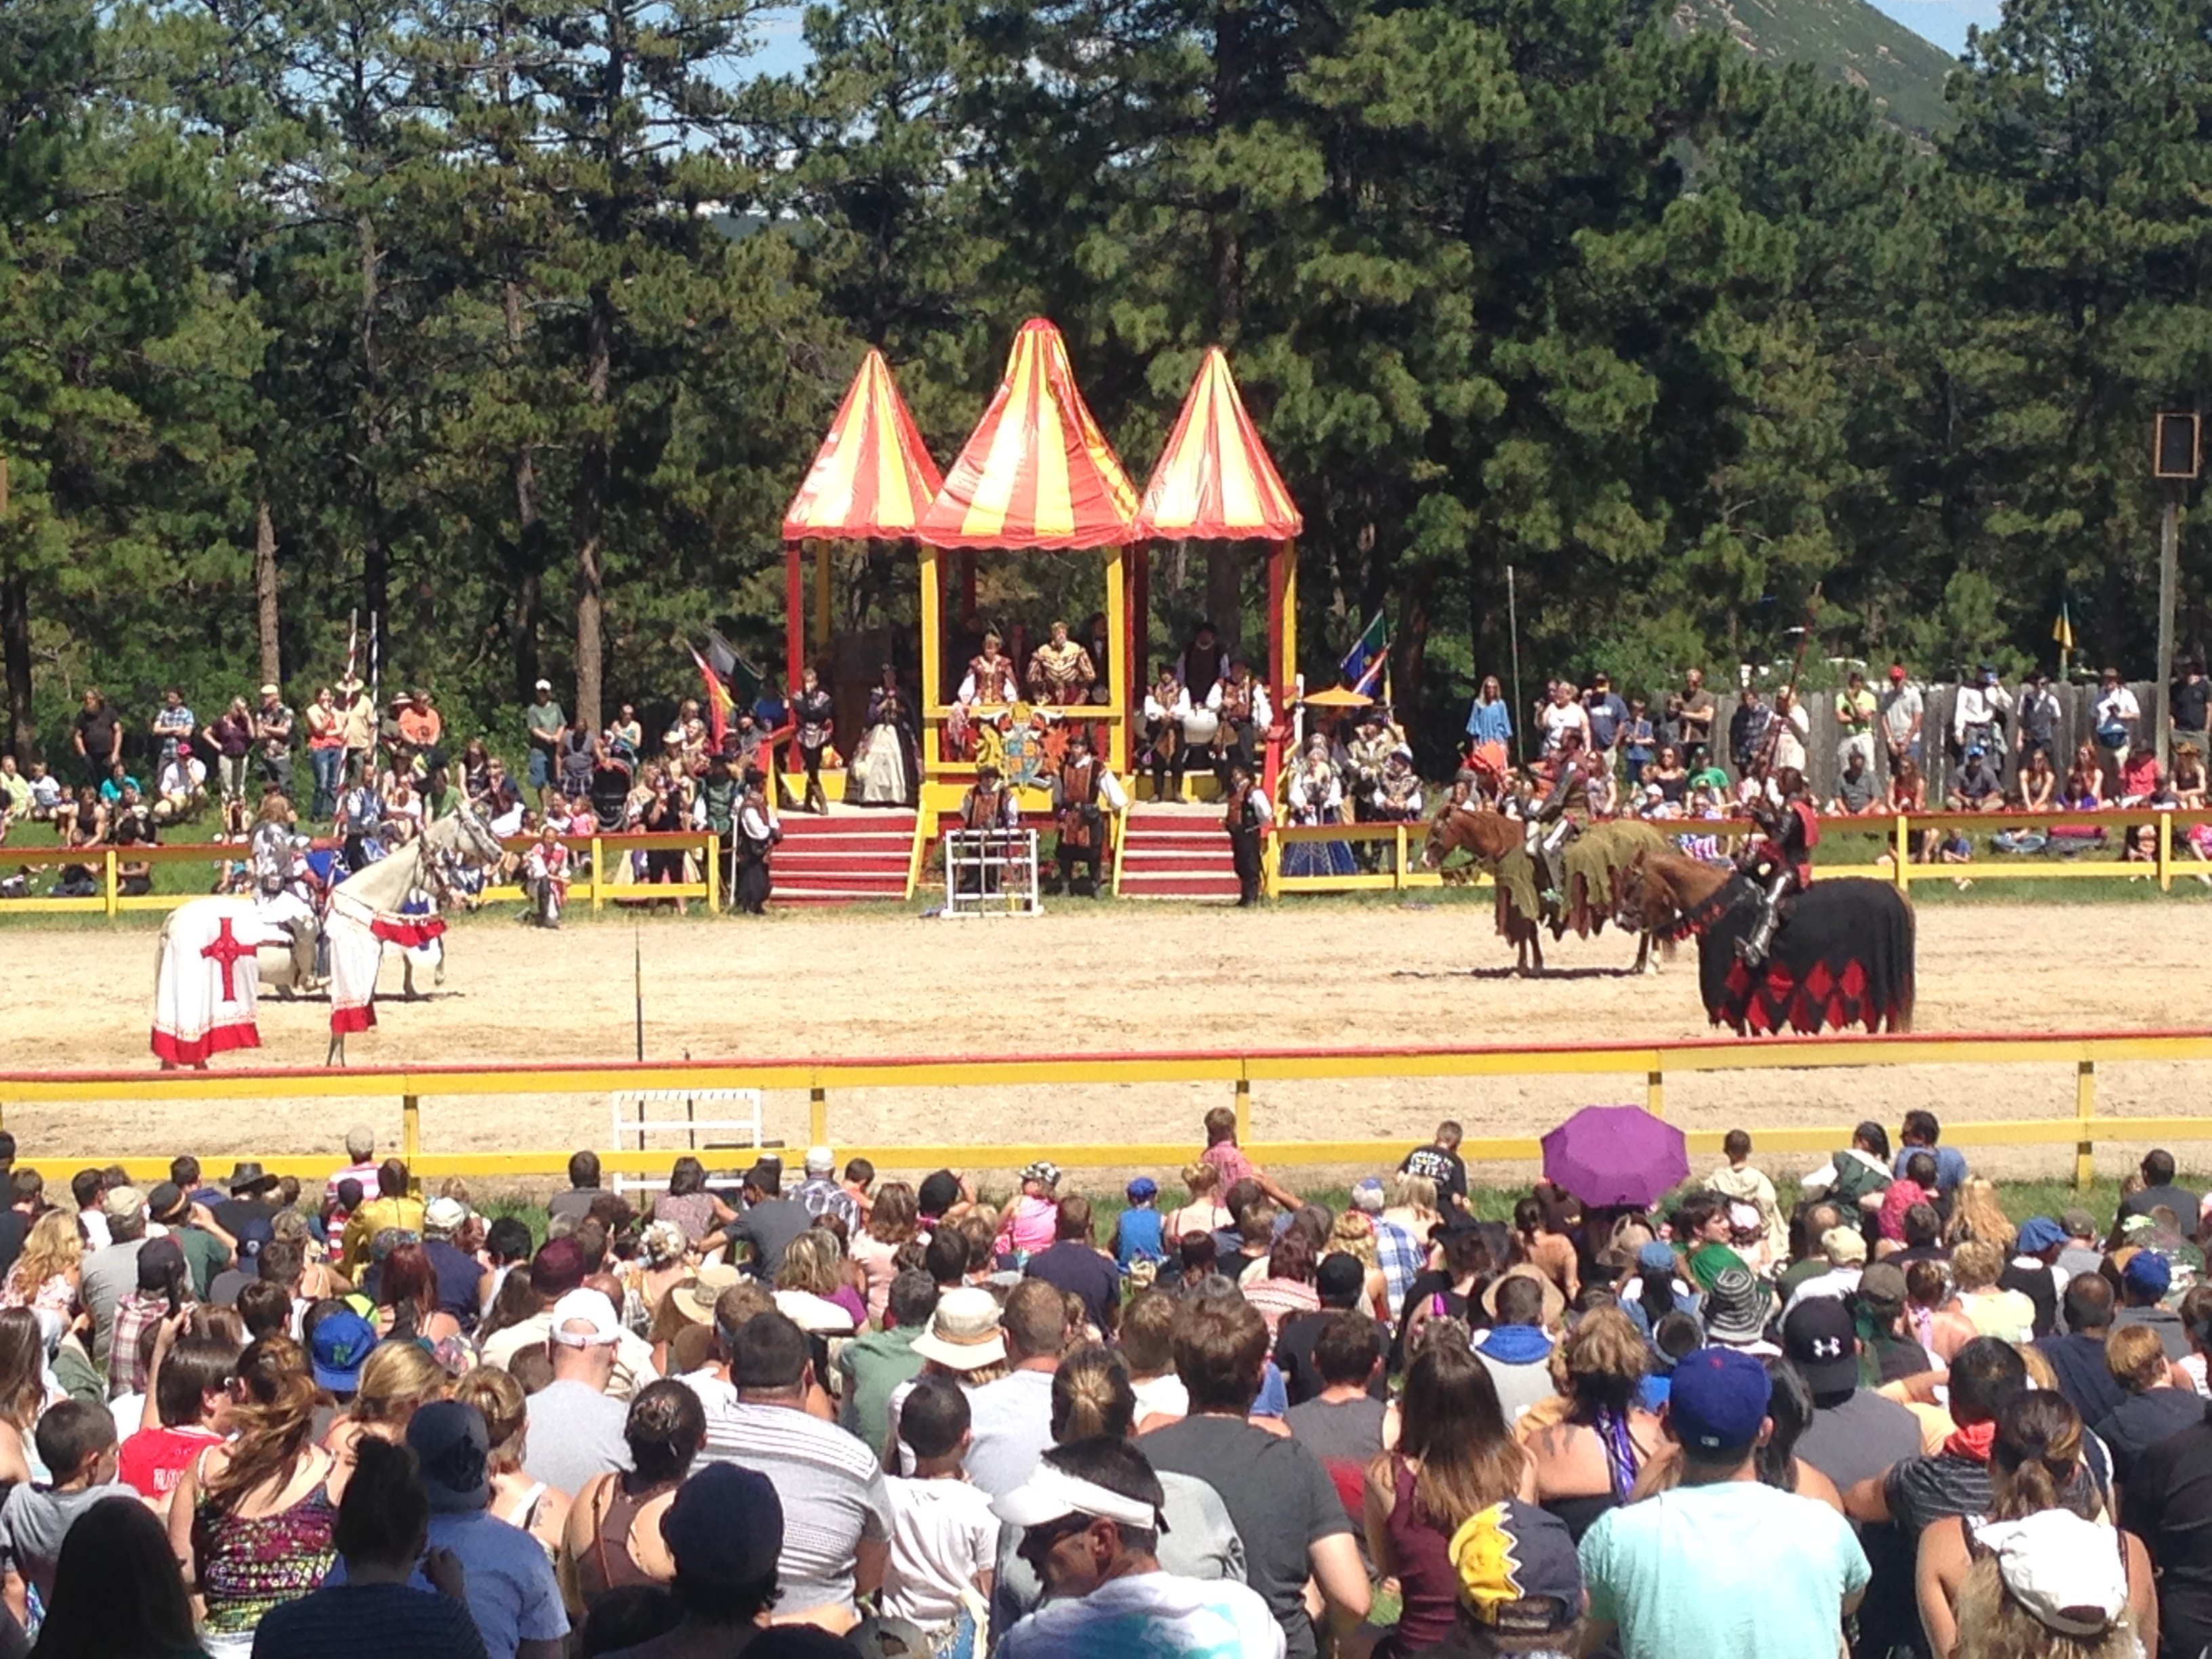 Jousting TO THE DEATH